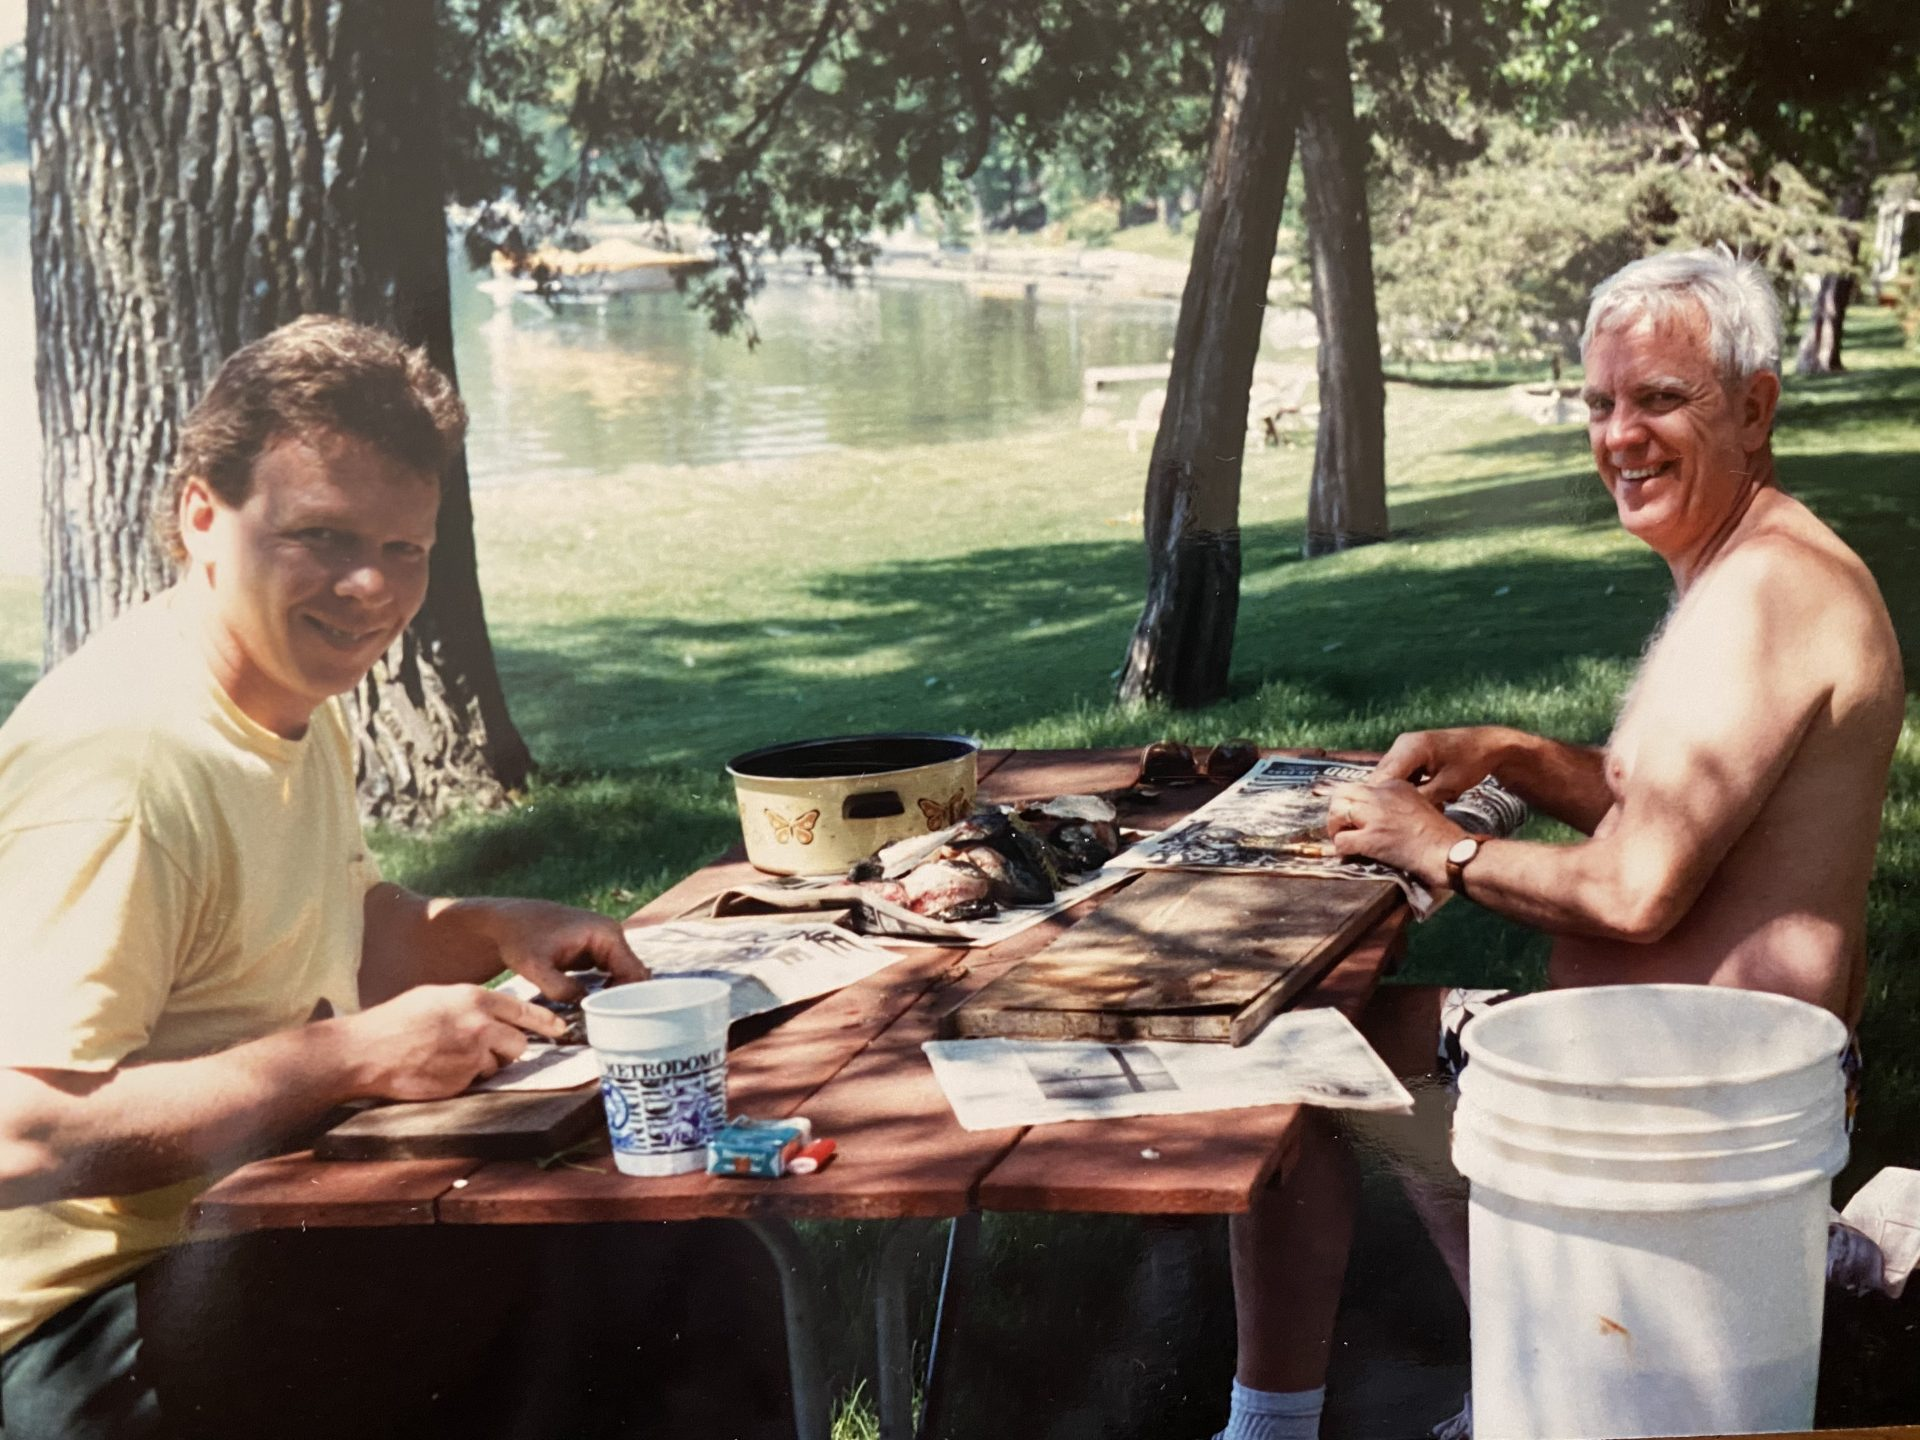 Dad and Jim cleaning fish after a good day of fishing on the lake in Minnesota.